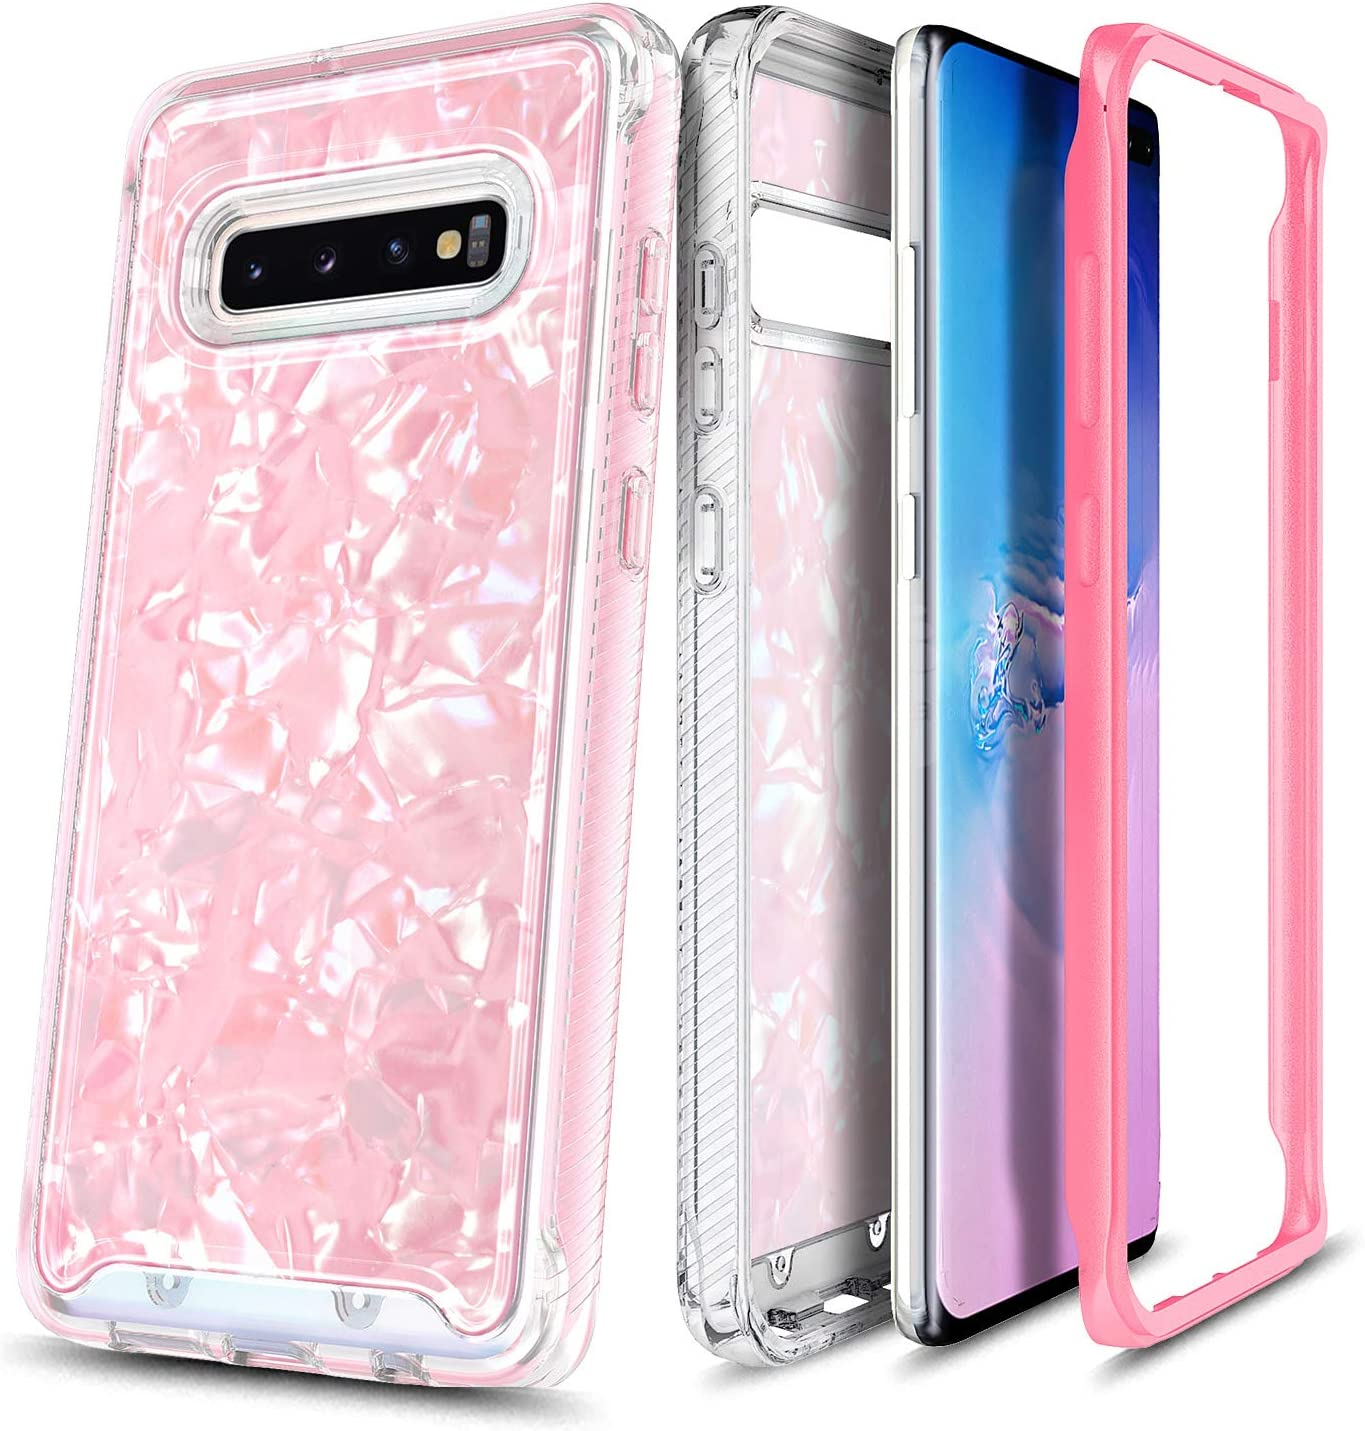 E-Began Case for Samsung Galaxy S10e, Full-Body Shockproof Protective Matte Bumper Cover (Without Screen Protector), Support Wireless Charging, Seashell Pattern Design Case (5.8 inch) -Light Pink